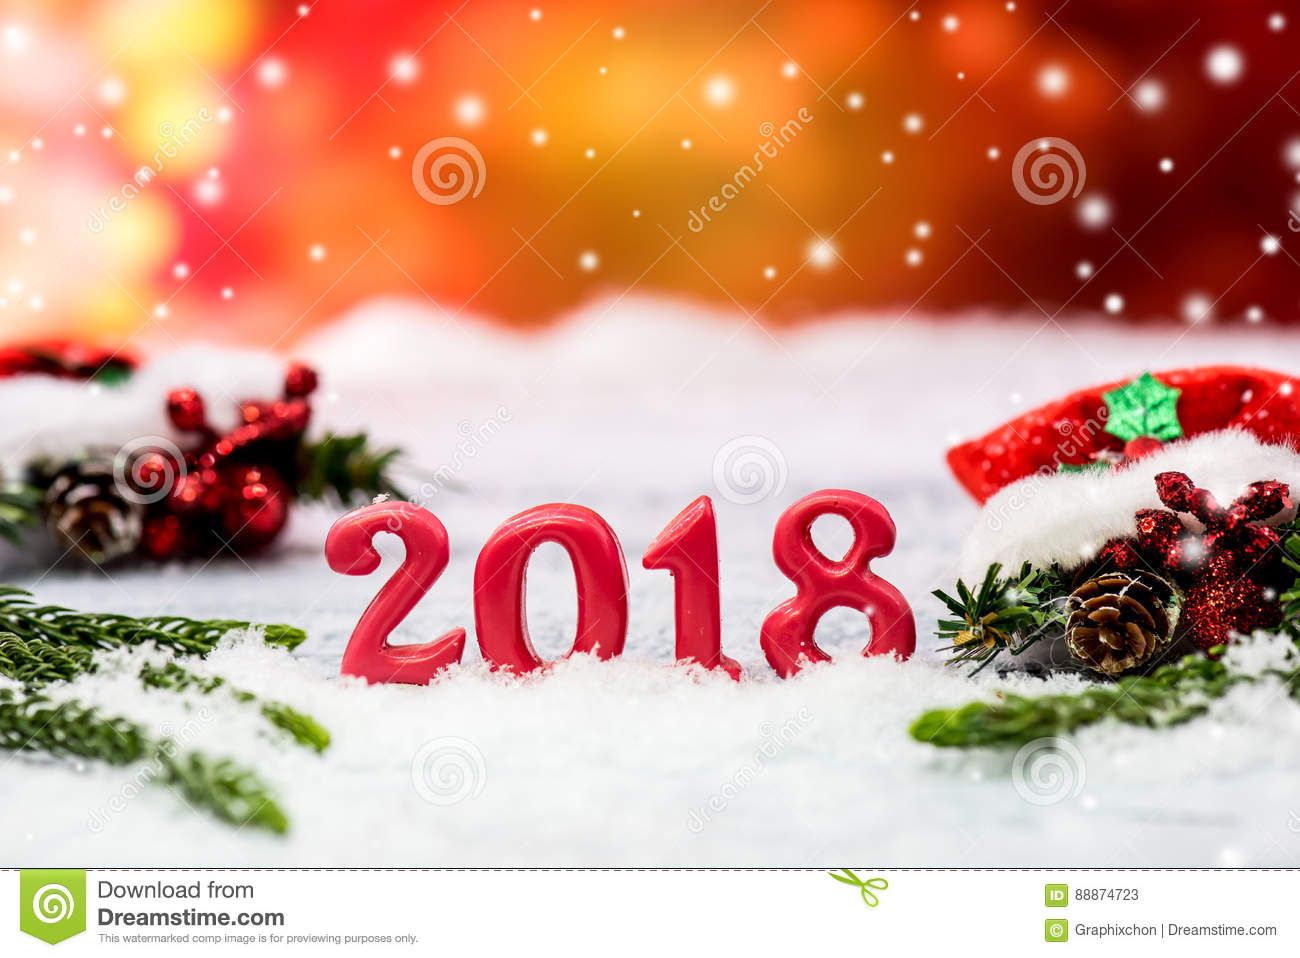 merry christmas and new year 2018 stock image image of winter